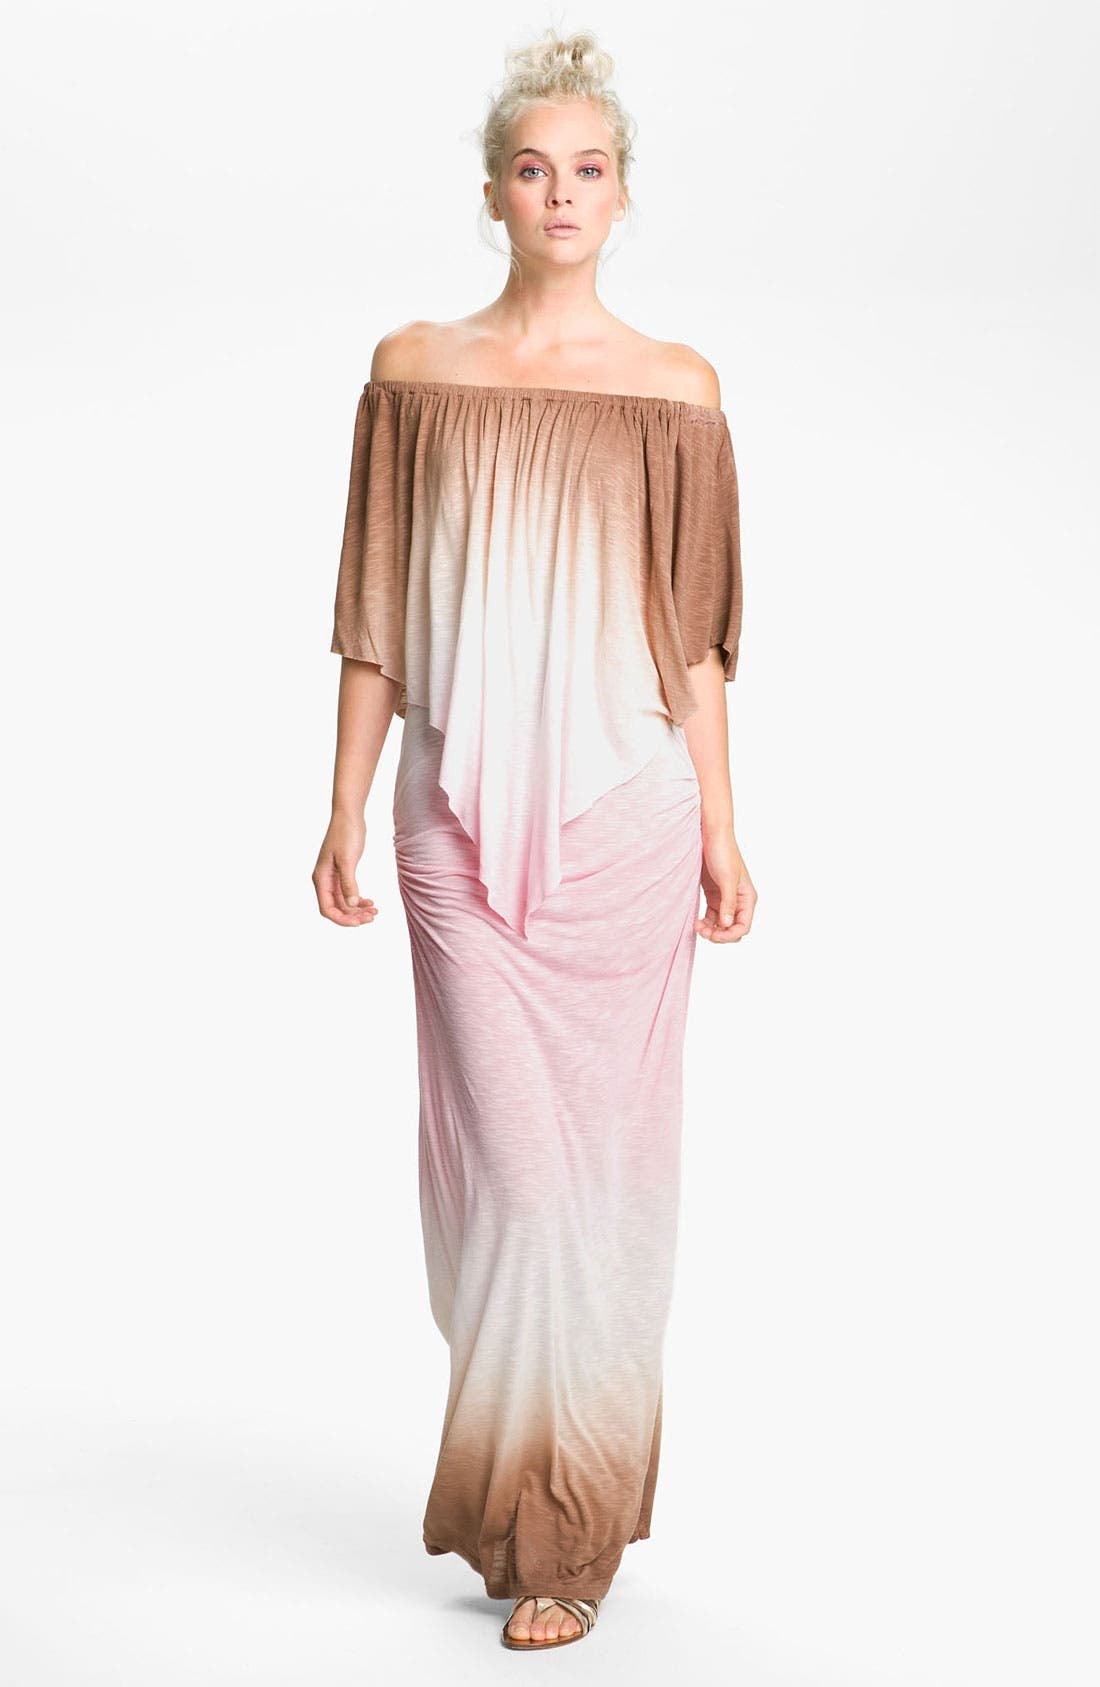 Alternate Image 1 Selected - Young, Fabulous & Broke 'Fiona' Maxi Dress